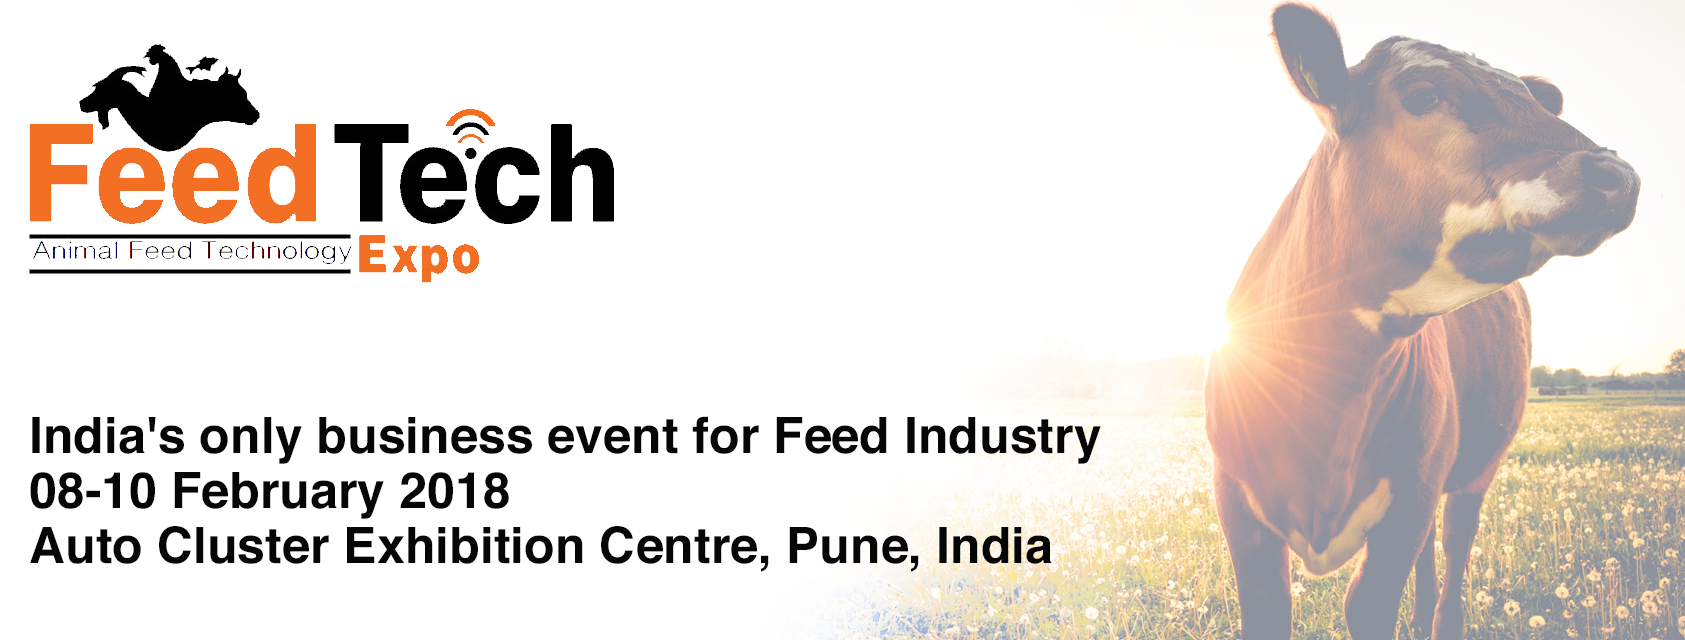 Pen & Tec will be attending this year's FeedTech Expo event in Pune, India